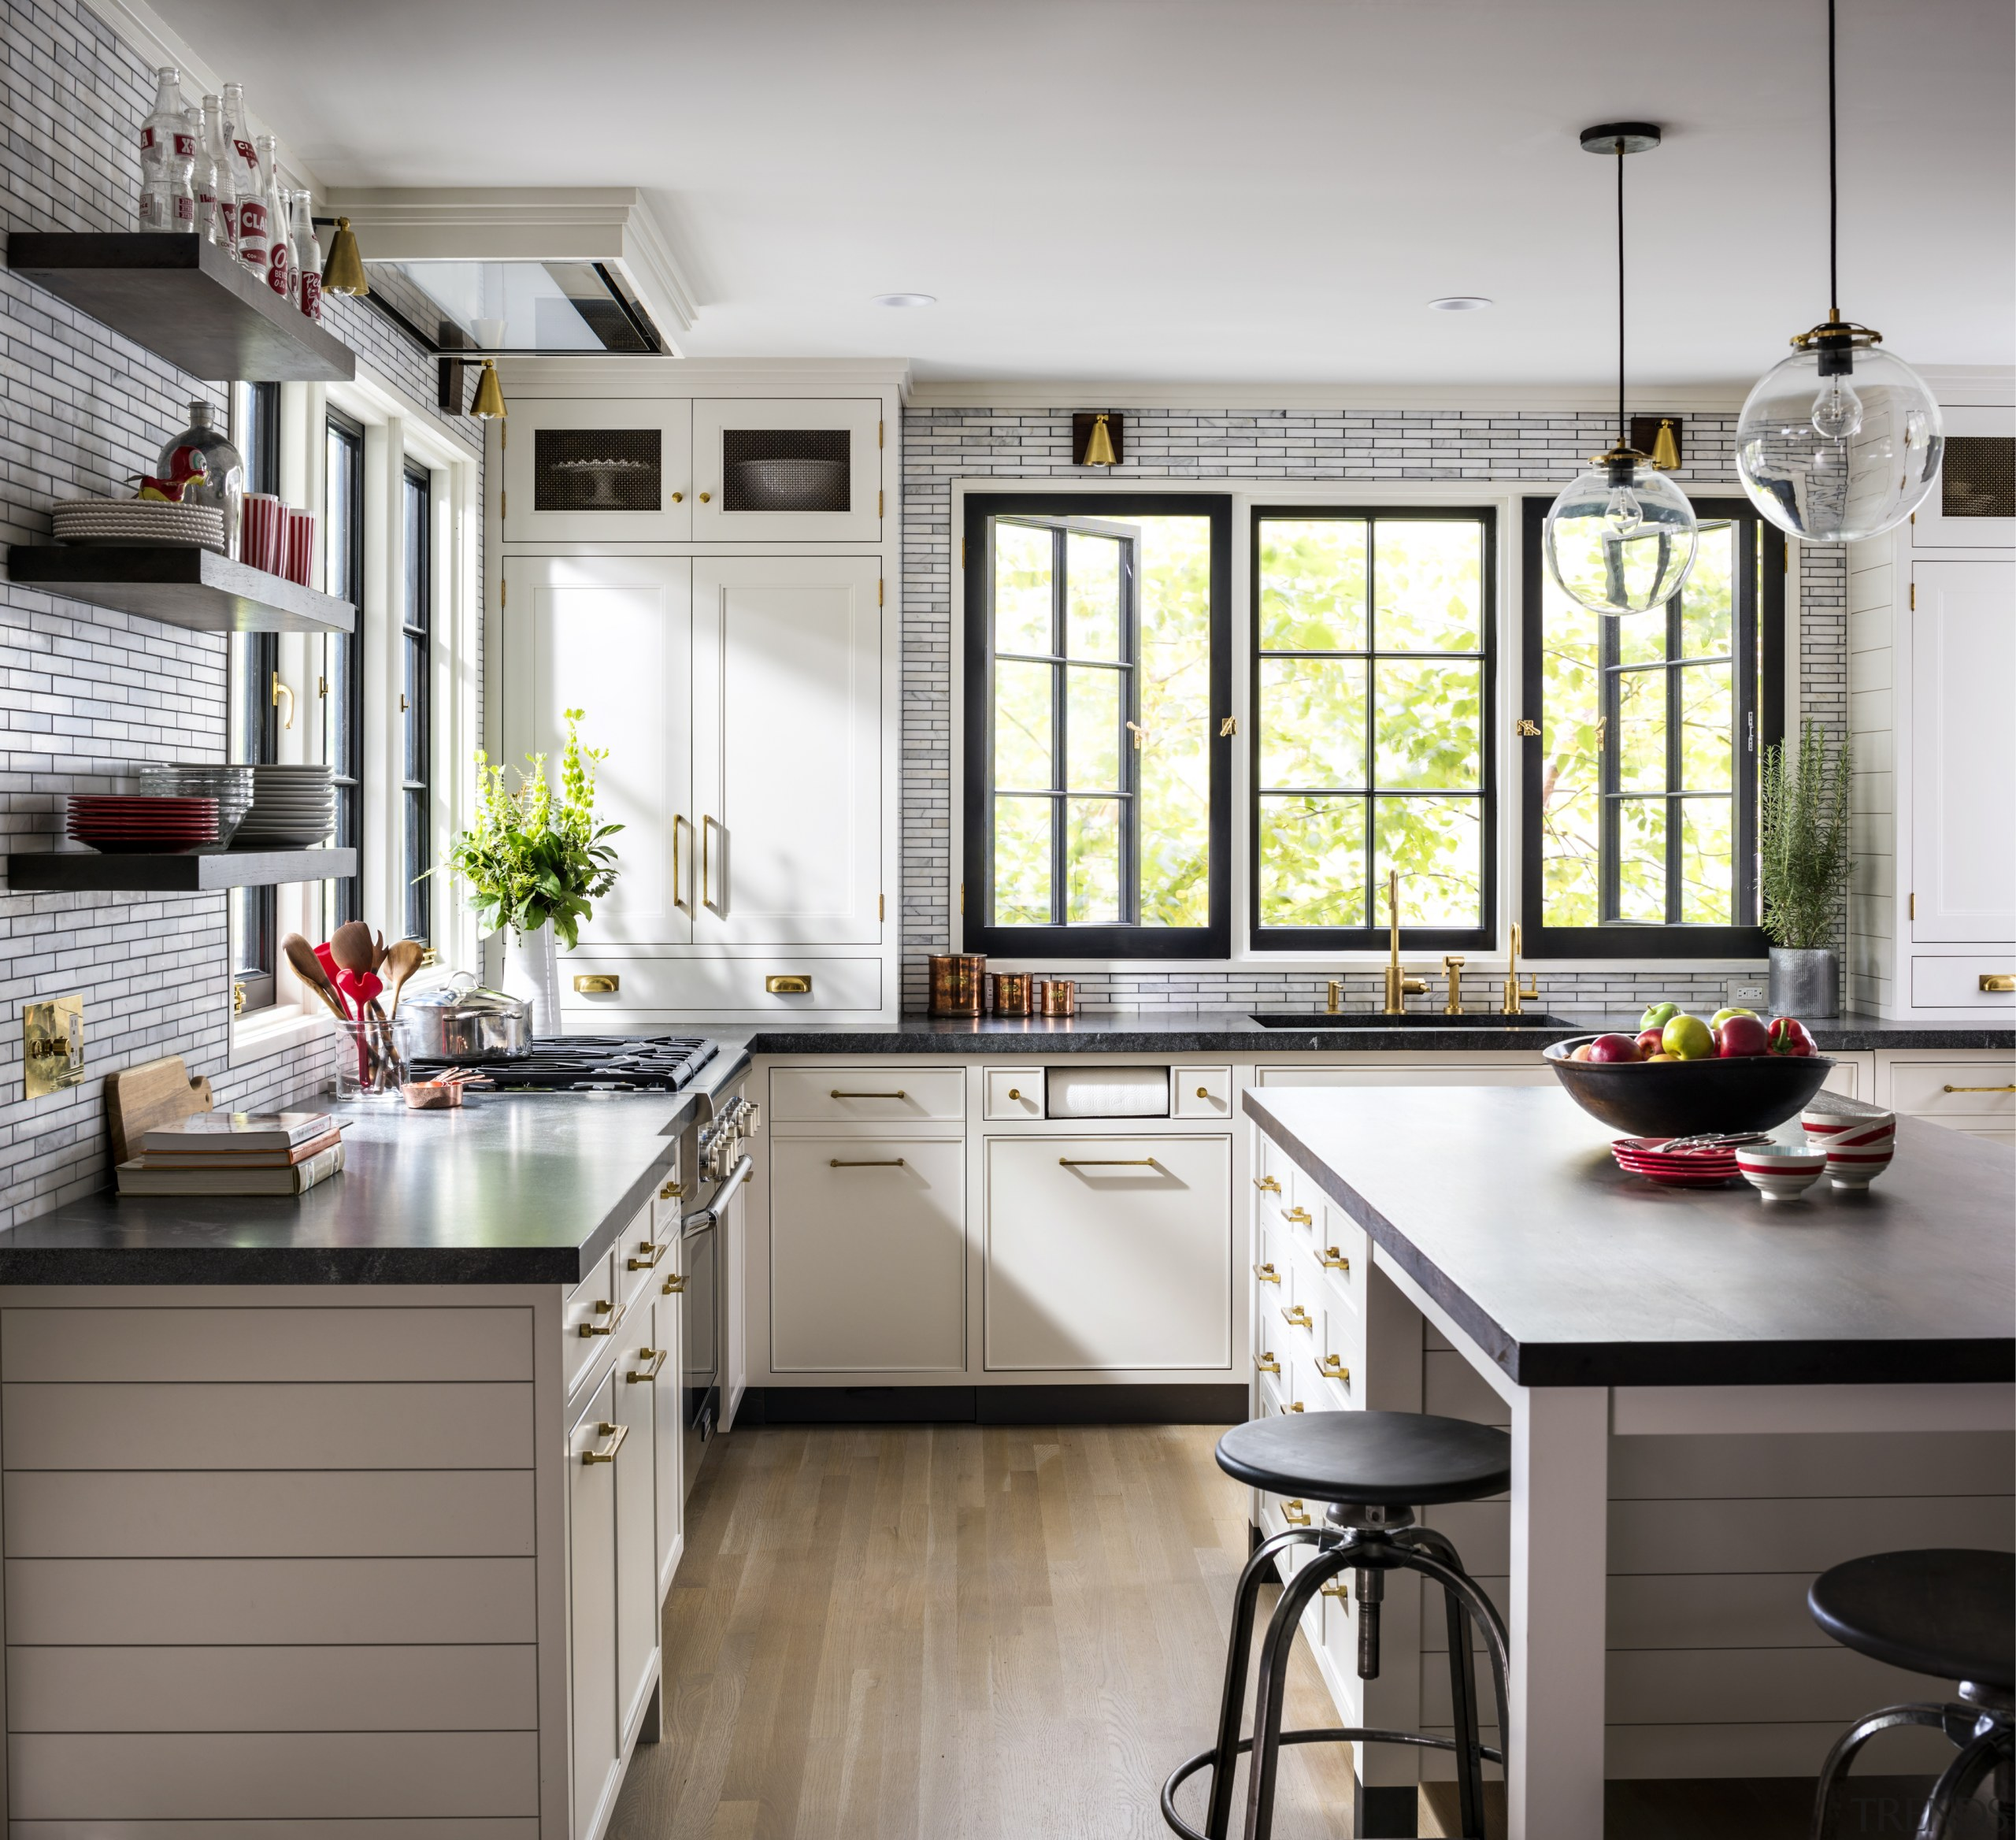 For this project, designer Sarah Robertson – also Kitchen, cabinetry, countertop, floor, flooring, furniture, home, house, interior design, kitchen, table, tile, wood flooring, Studio Dearborn